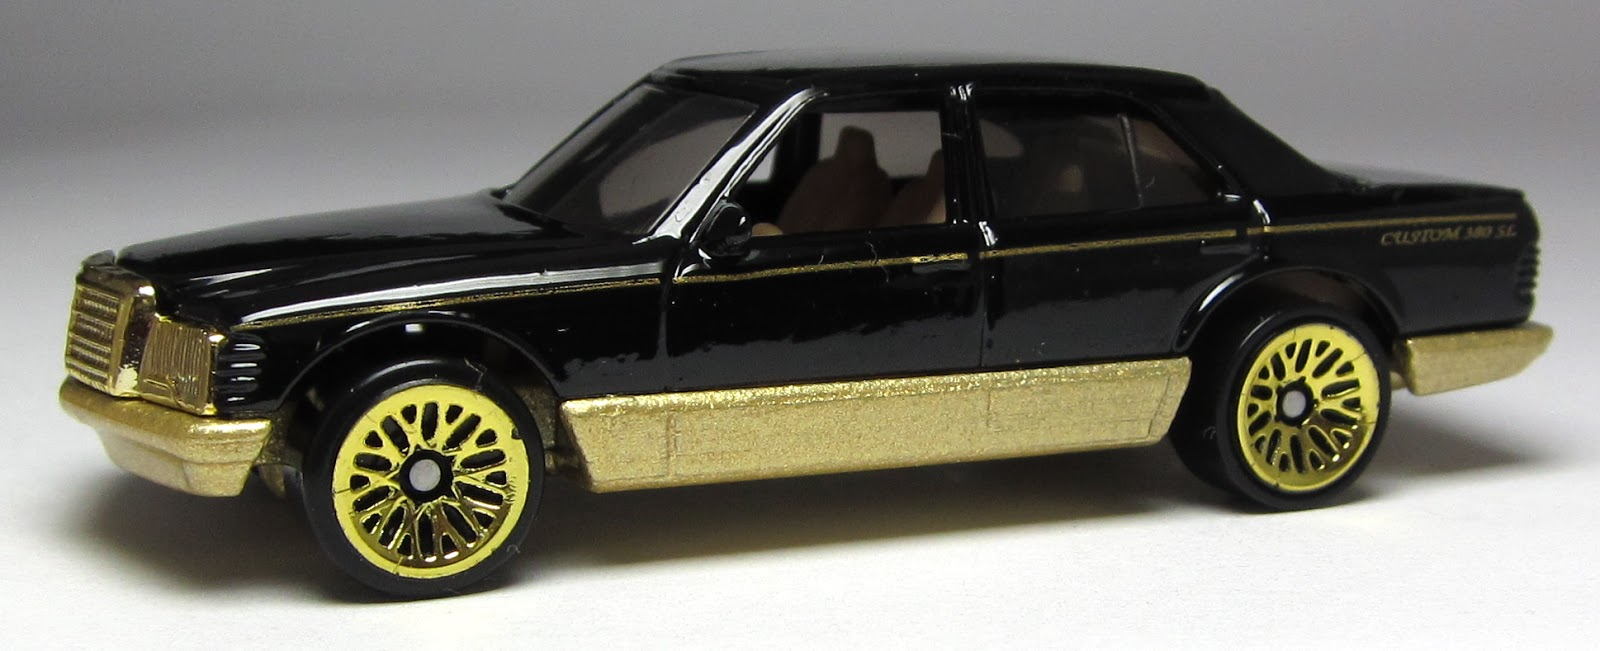 Car lamley group model of the day hot wheels mercedes for Hot wheels mercedes benz